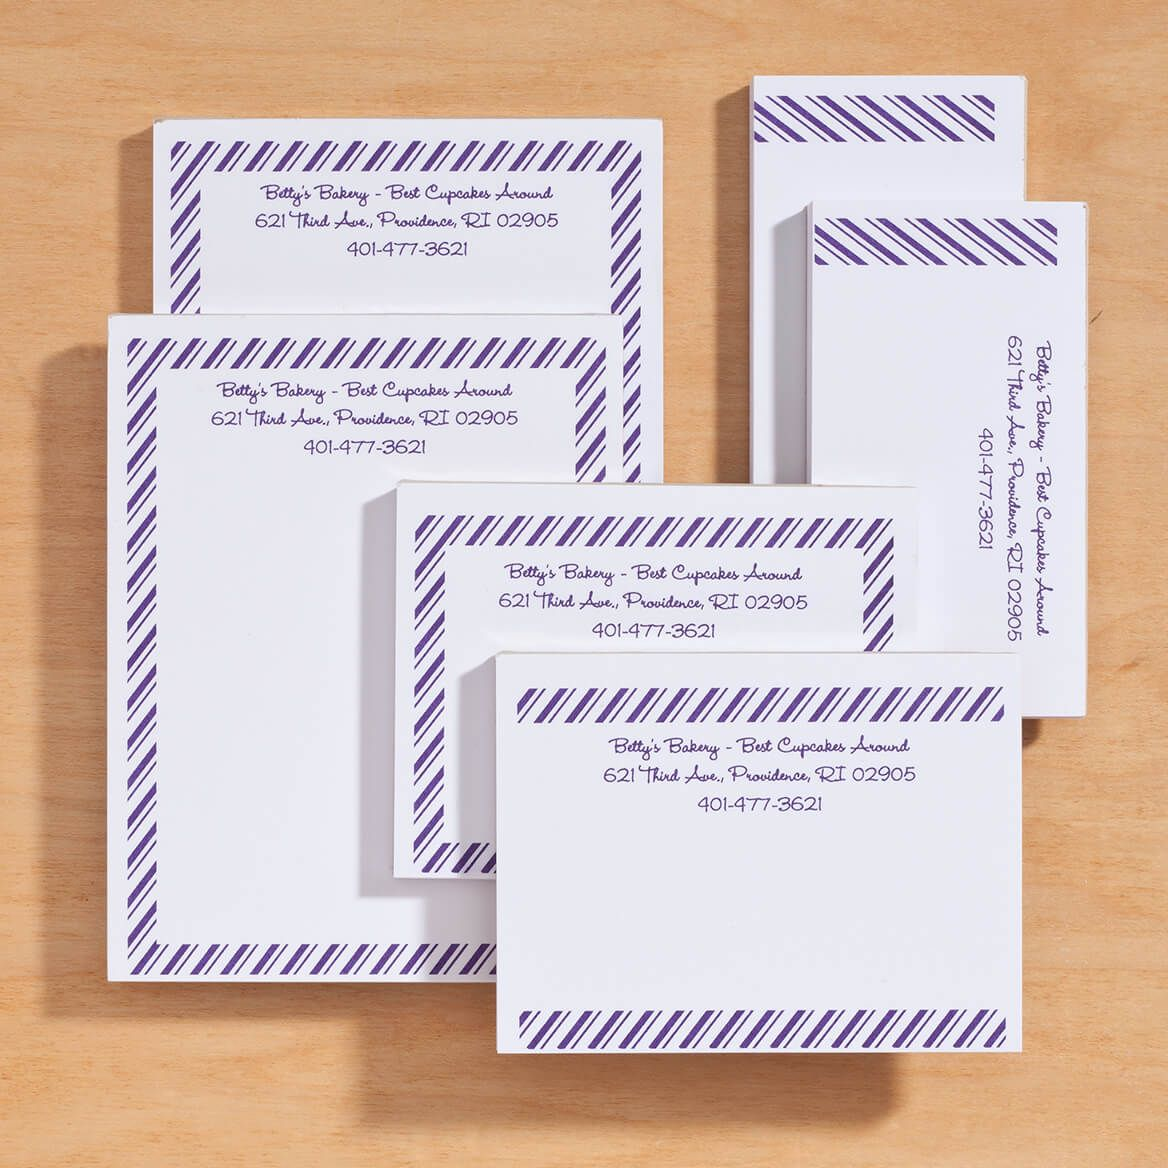 Personalized Diagonal Stripes Business Notepads Refill Set of 6-350383